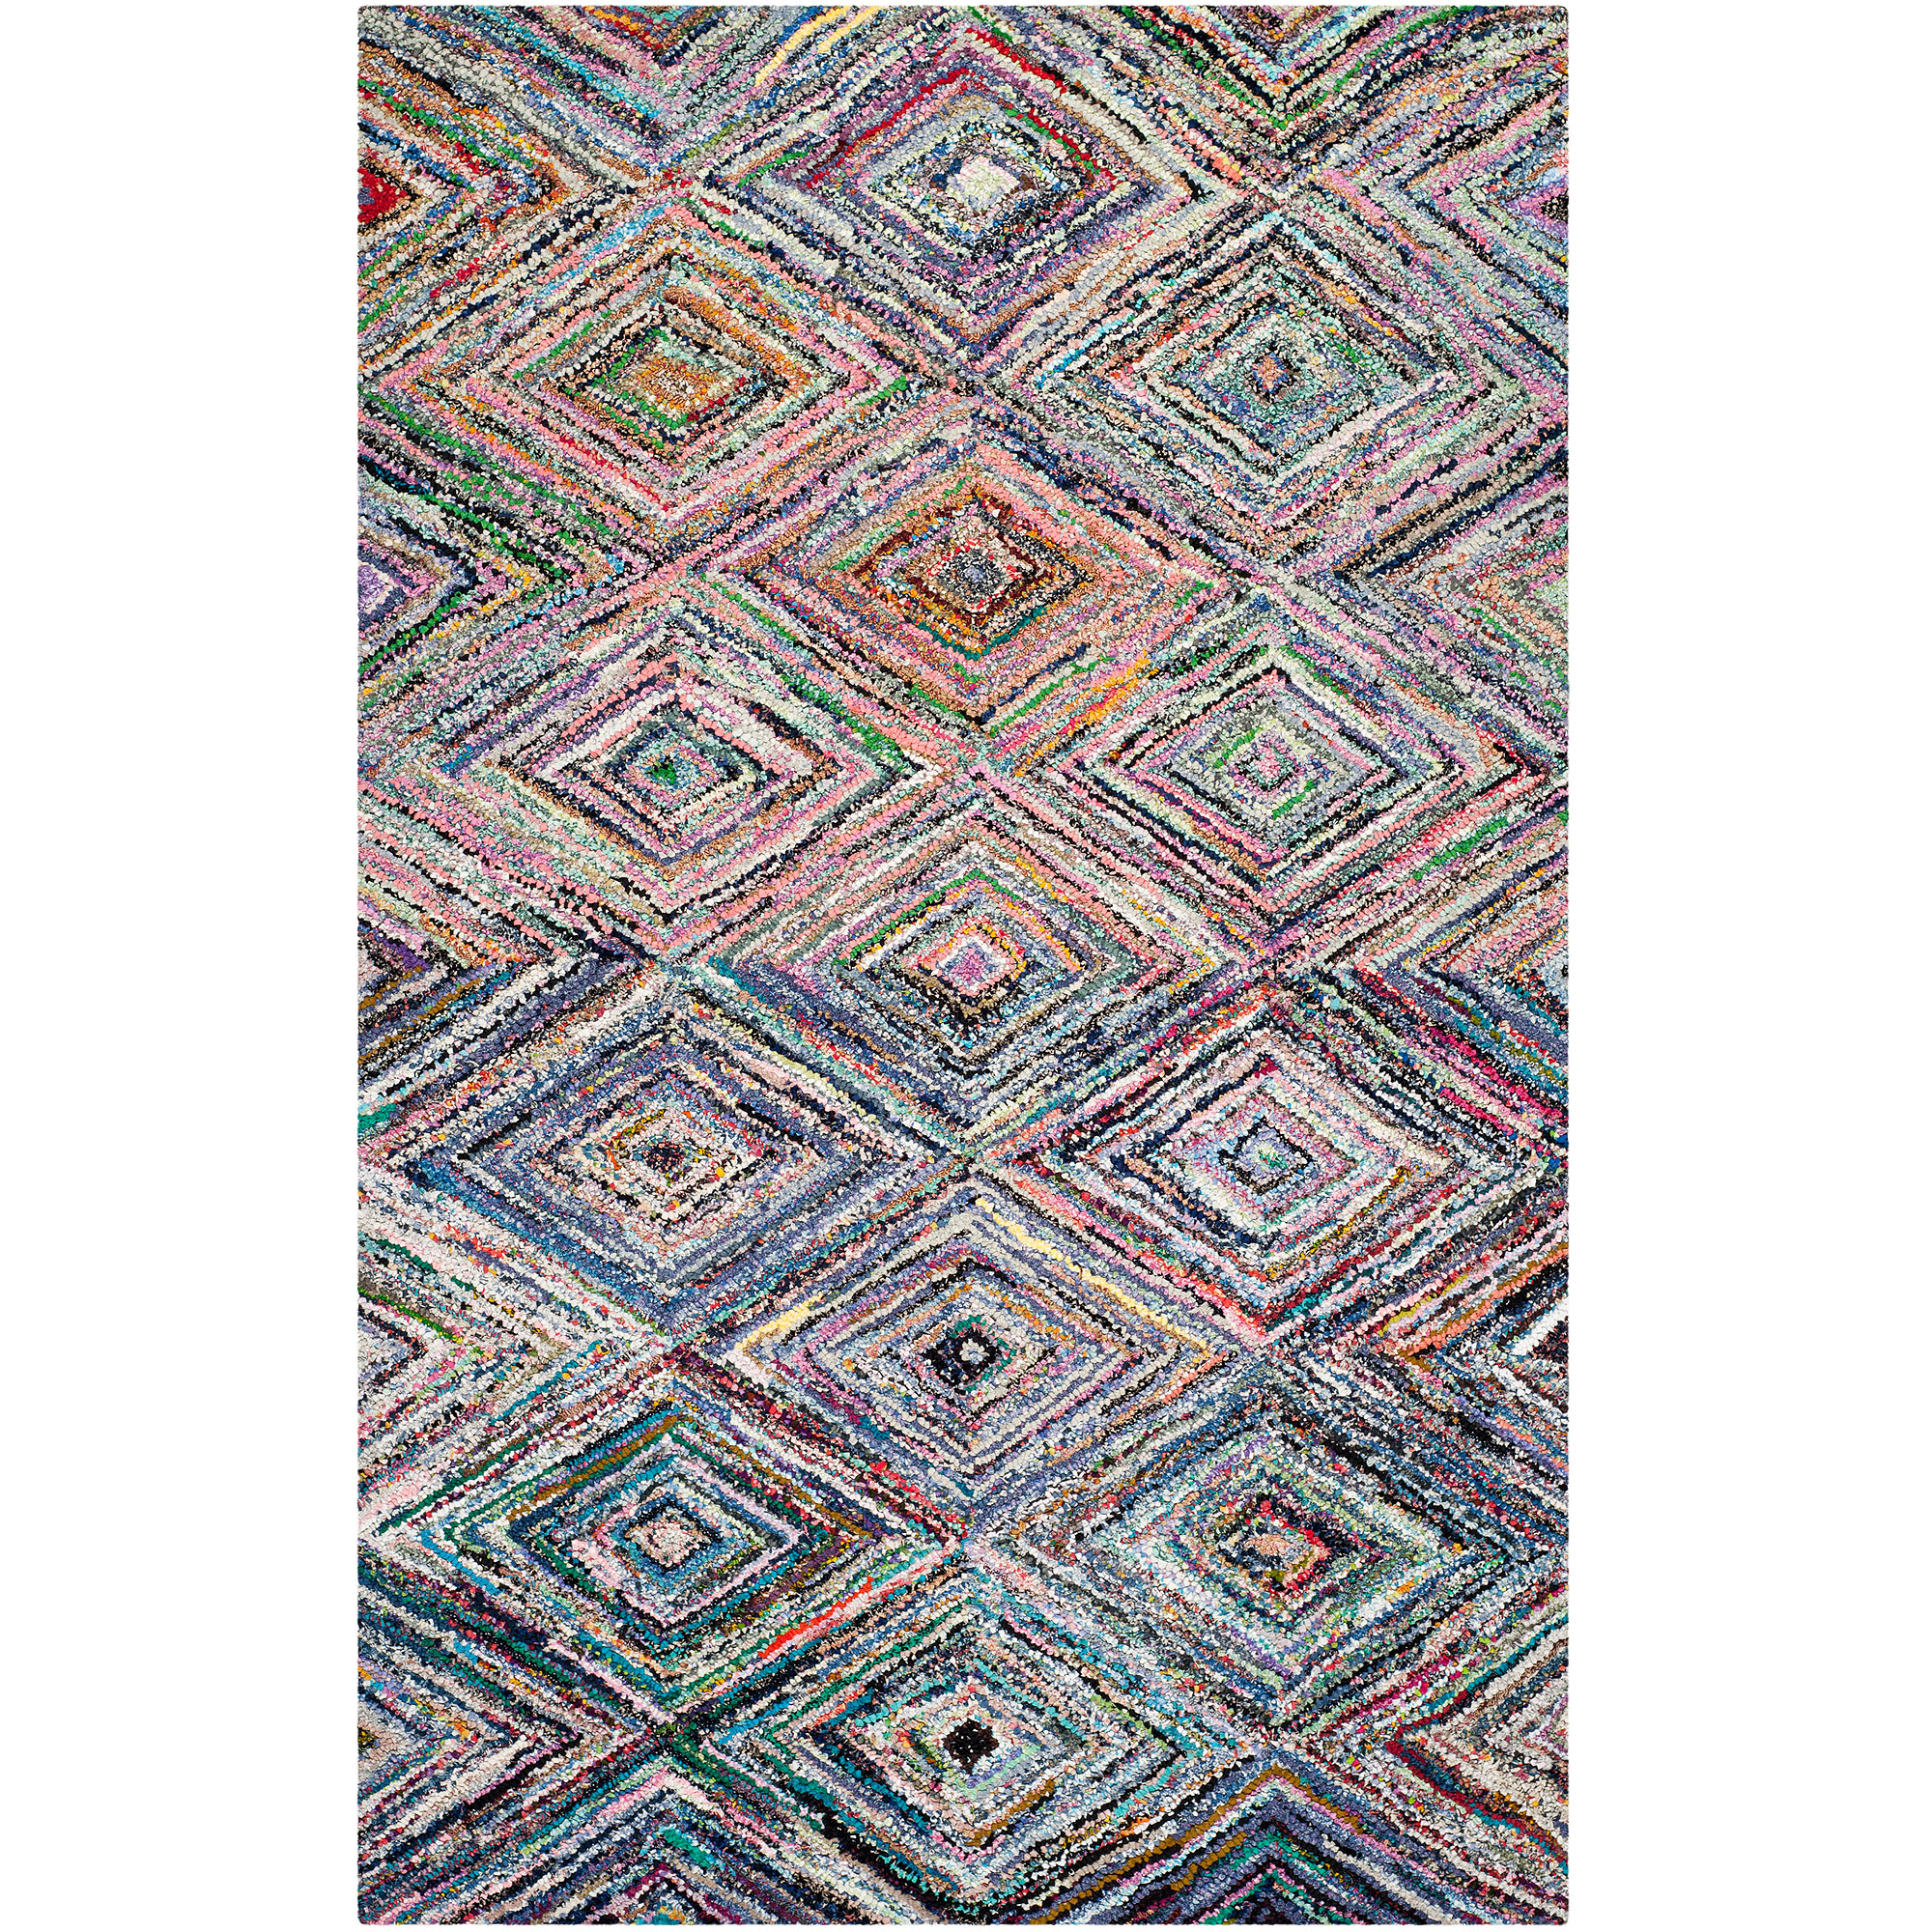 Safavieh Nantucket Aimee Hand Tufted Cotton Area Rug, Multi-Colored